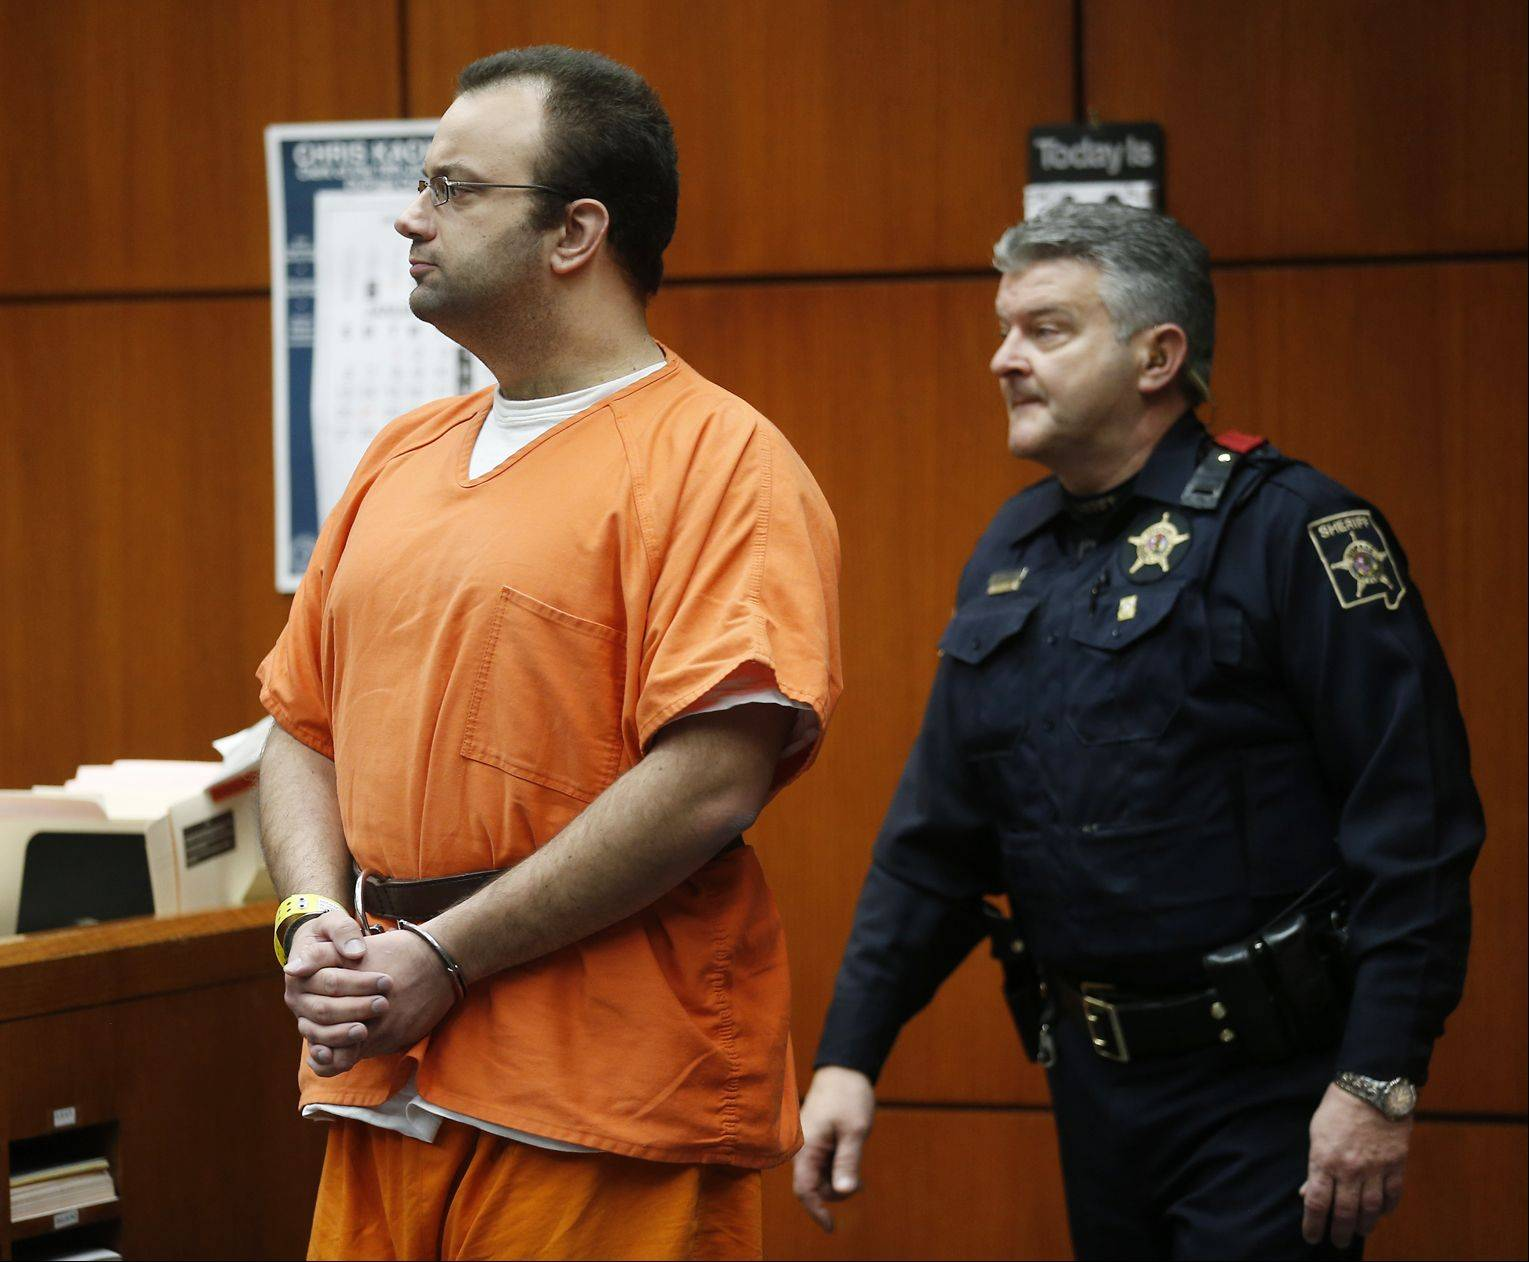 Joseph Spitalli enters a DuPage County courtroom for his arraignment on murder charges. The Darien man is charged with the Nov. 16 slaying of Teymur Huseynli, who was dating Spitalli�s former girlfriend.